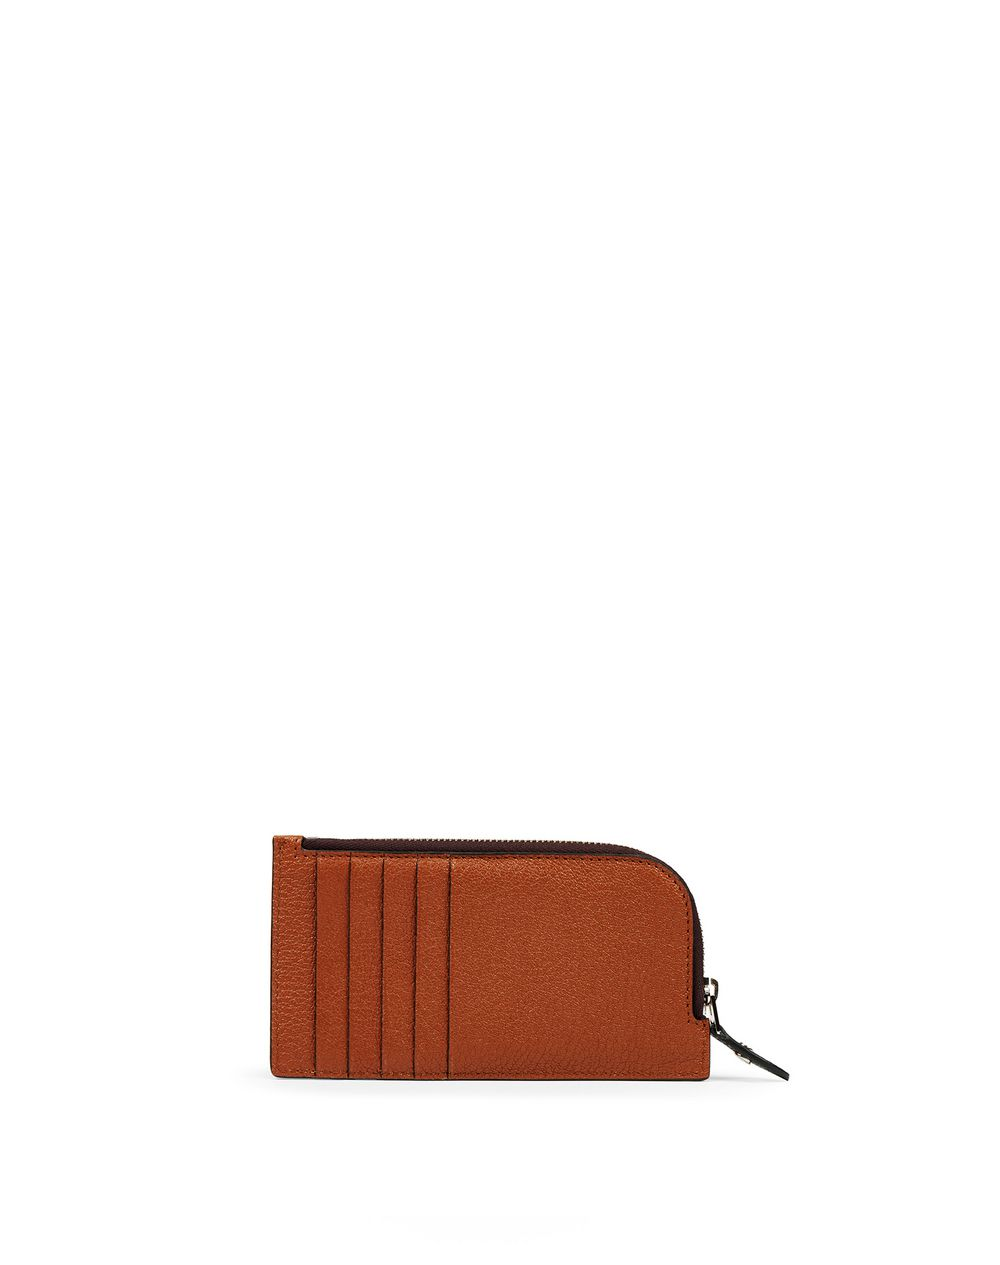 EARTH-COLOURED ZIPPED CLUTCH - Lanvin